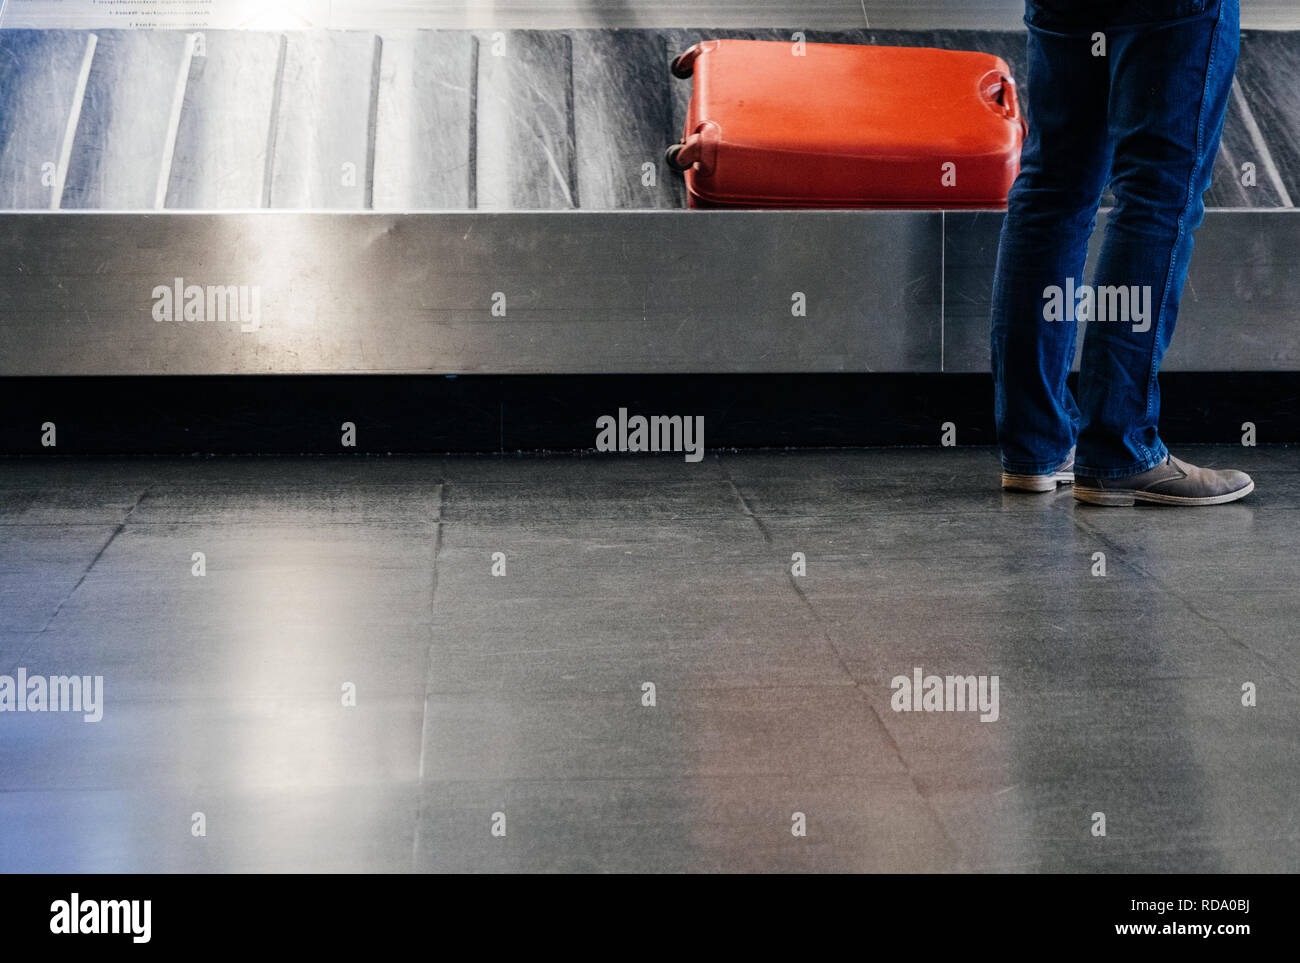 Rear view of a businessman waiting for luggage at the conveyor belt with beautiful red luggage on the belt - Stock Image